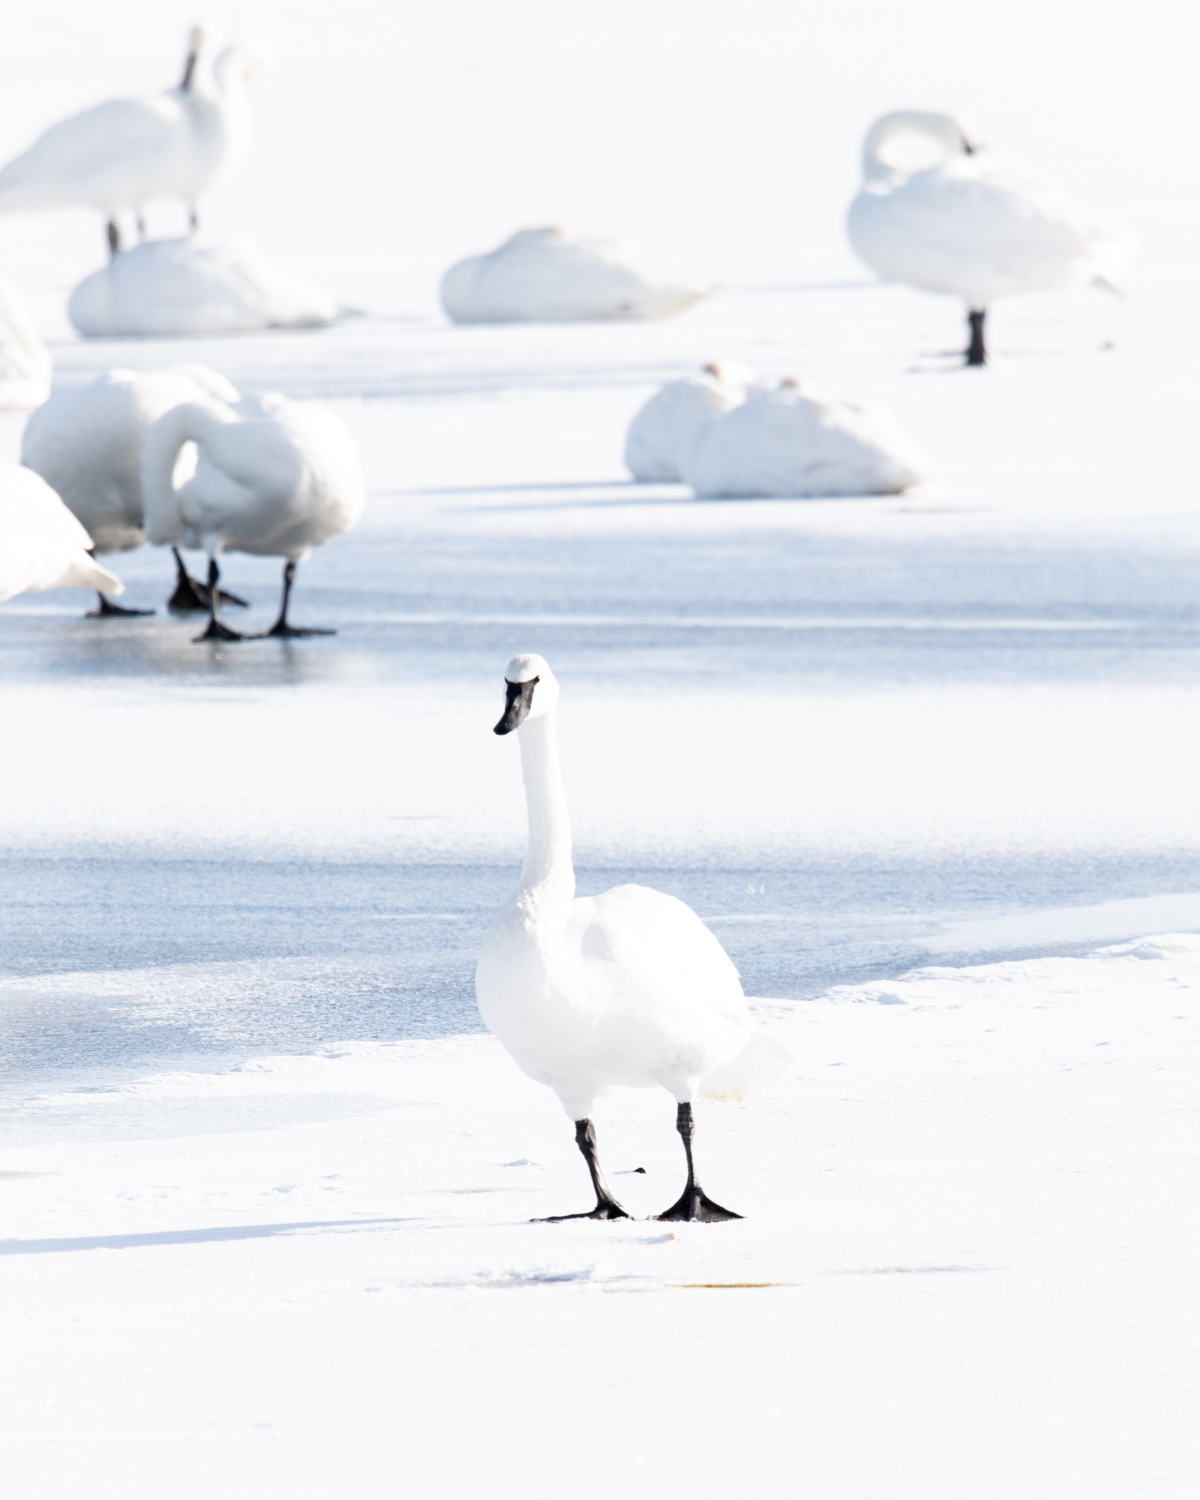 Image: A Trumpeter Swan stands on the ice after preening itself.